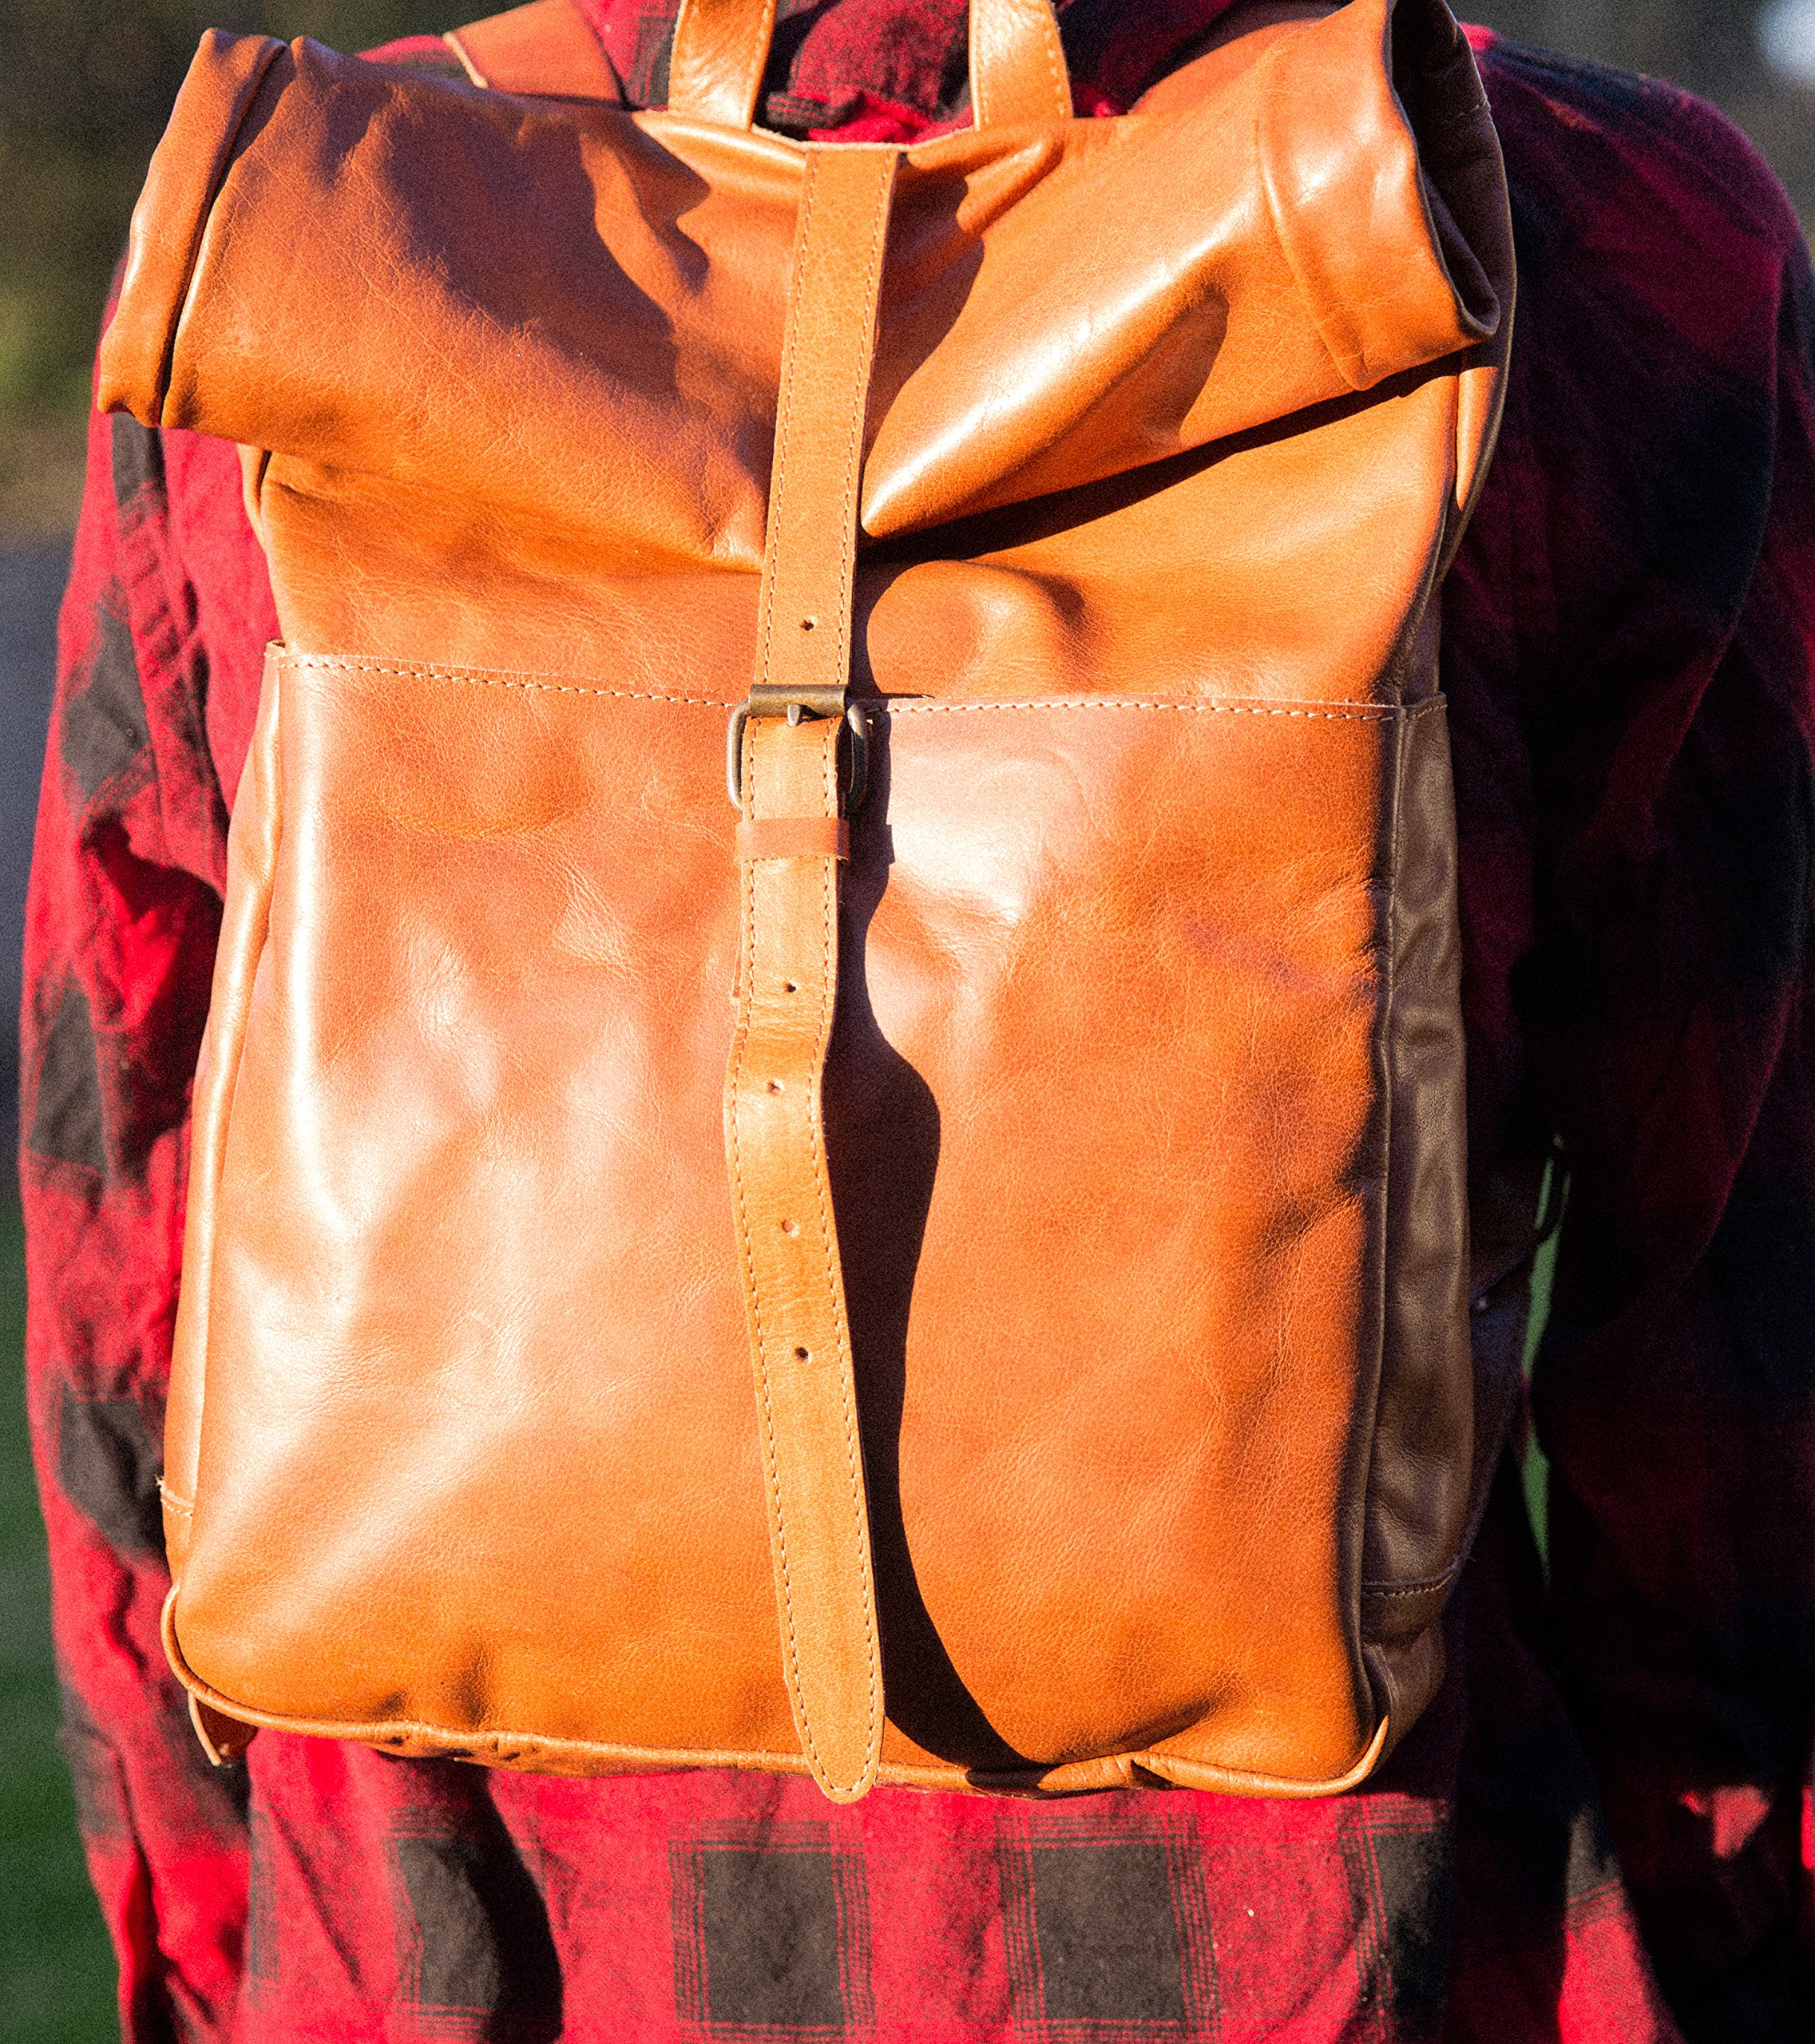 Leather Rolltop Backpack, Vintage Style Bag, Leather Rucksack Travel Backpack by Huxtan (Image #4)